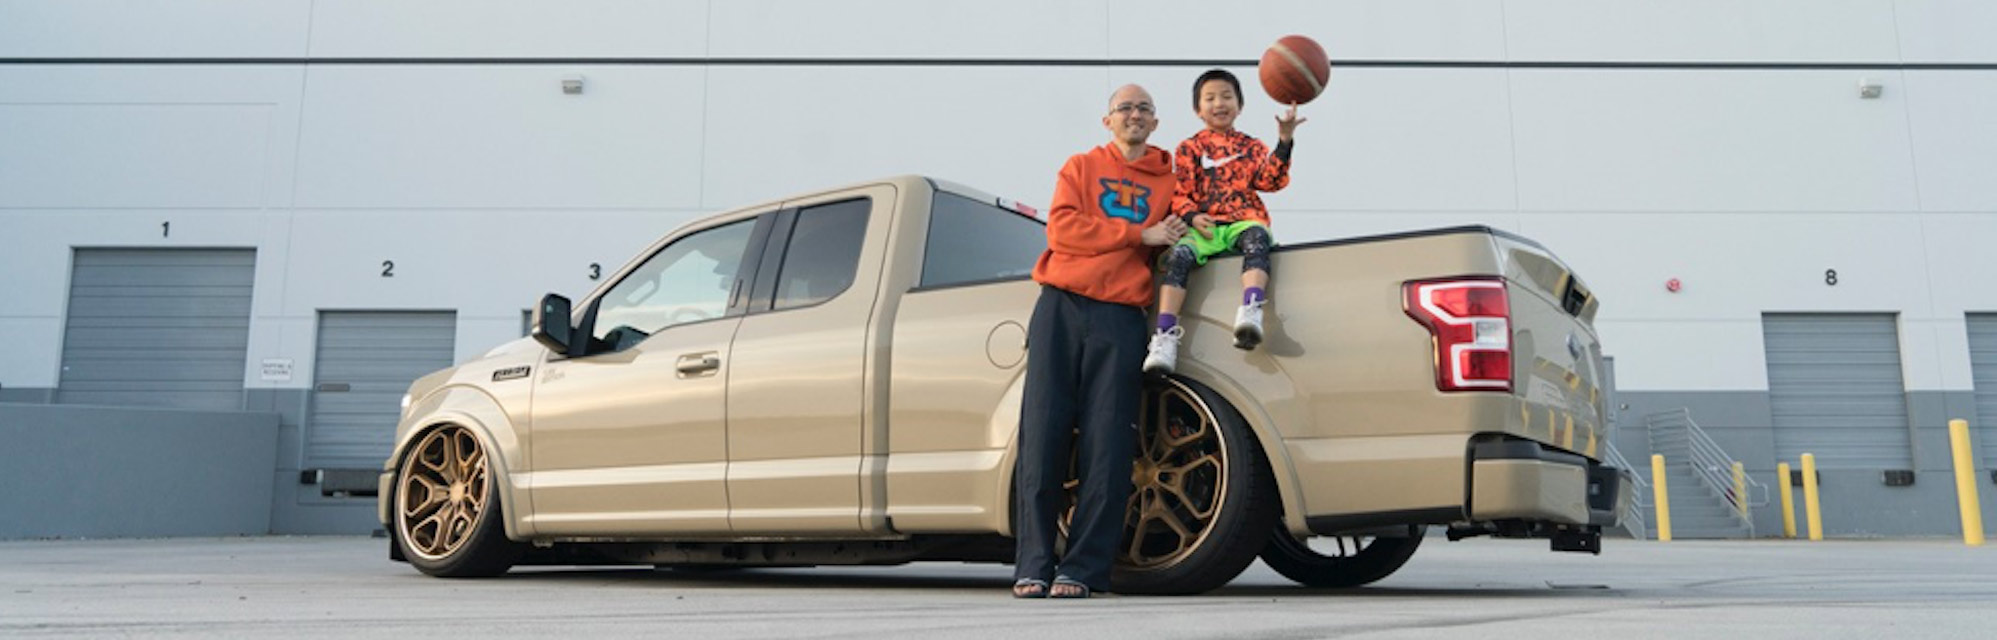 Neil Tjin holding his son next to a Ford truck